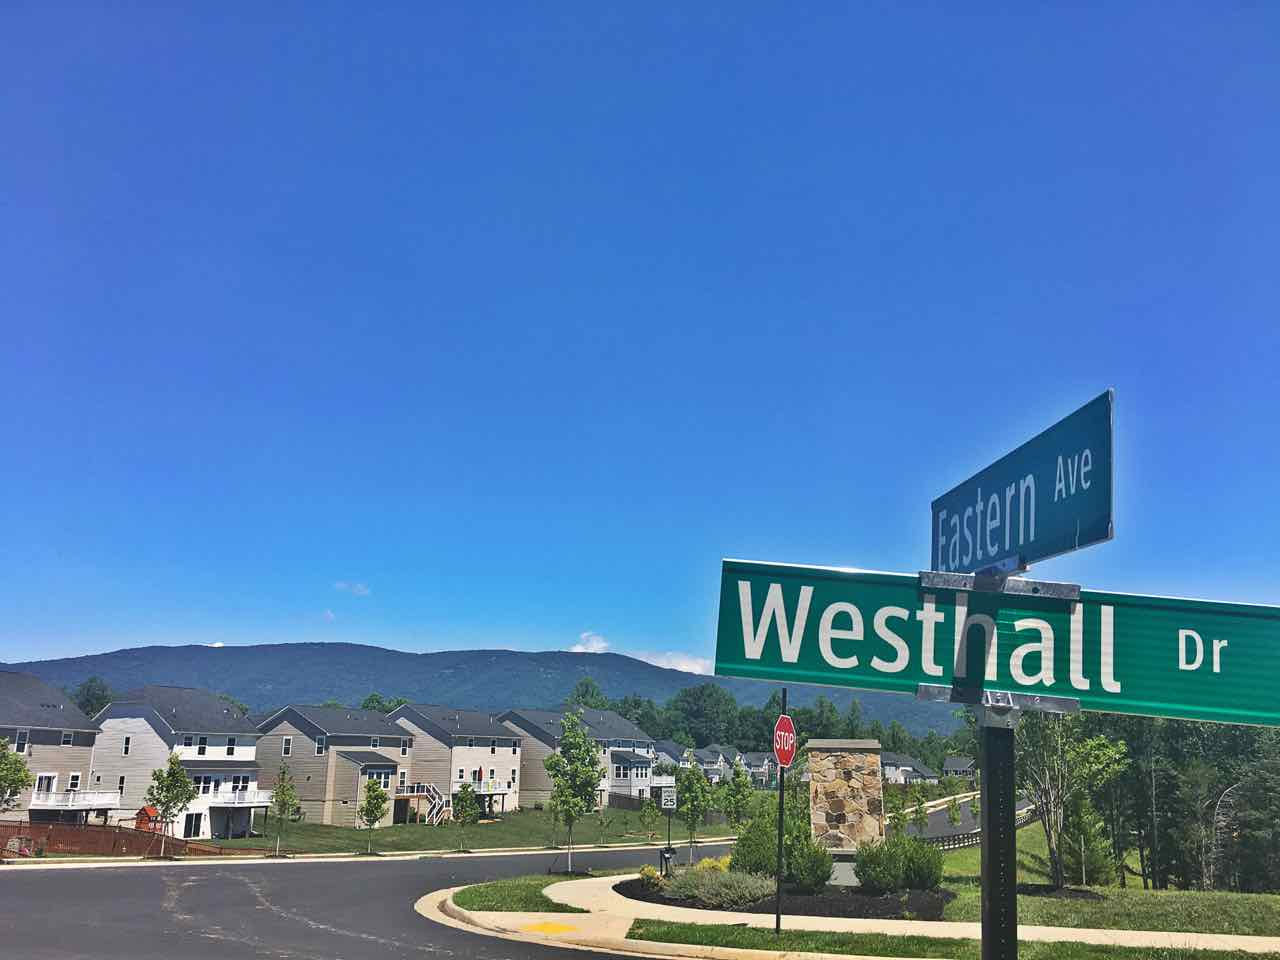 Westhall street sign with epic mountain views in the backgrond.